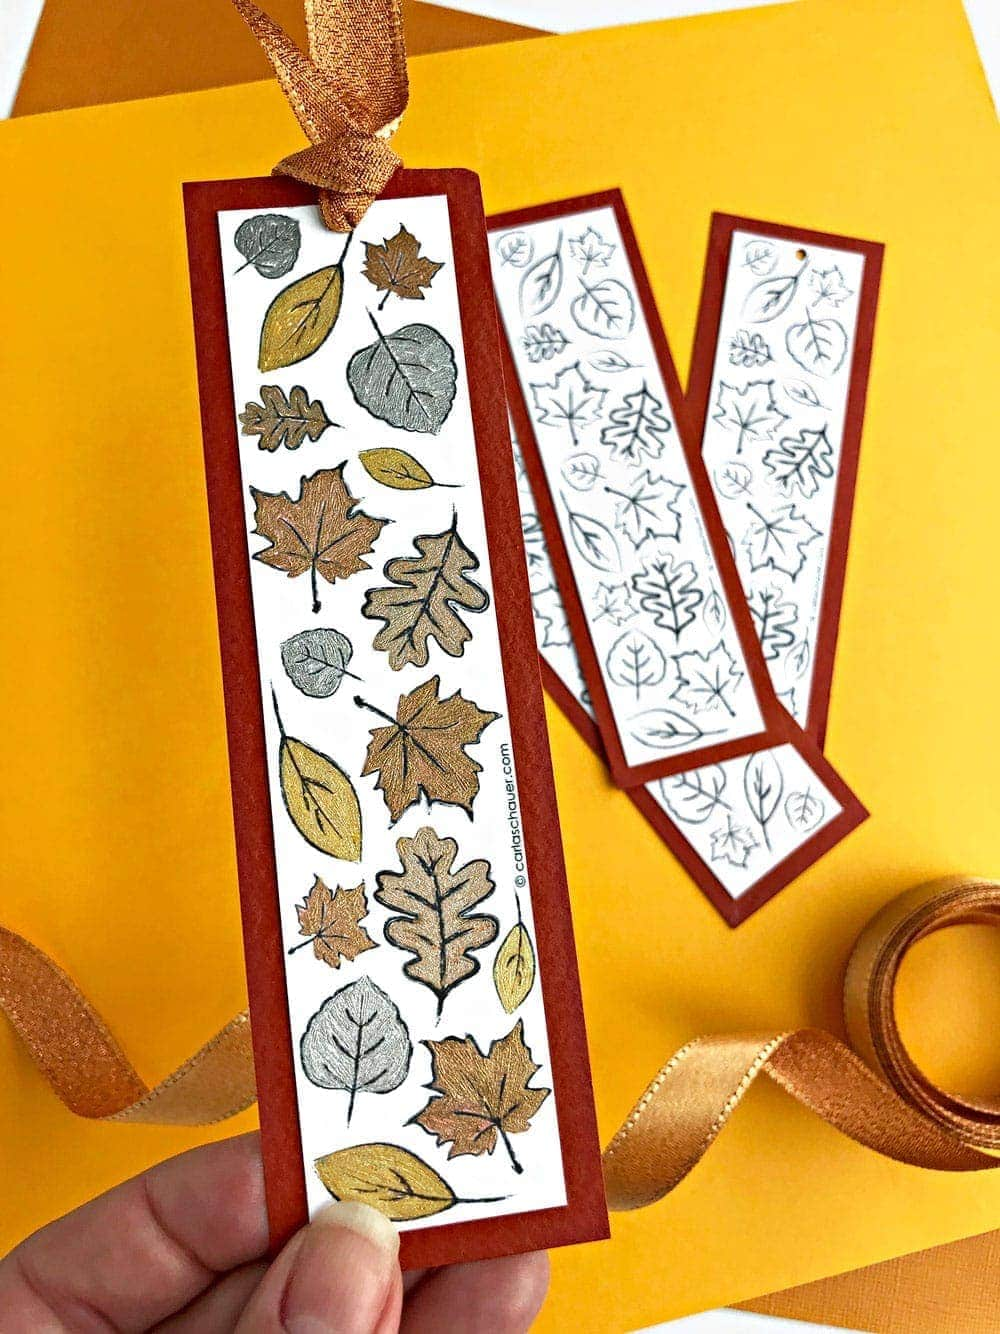 metallic colored leaf bookmark and uncolored leaf bookmarks on yellow background